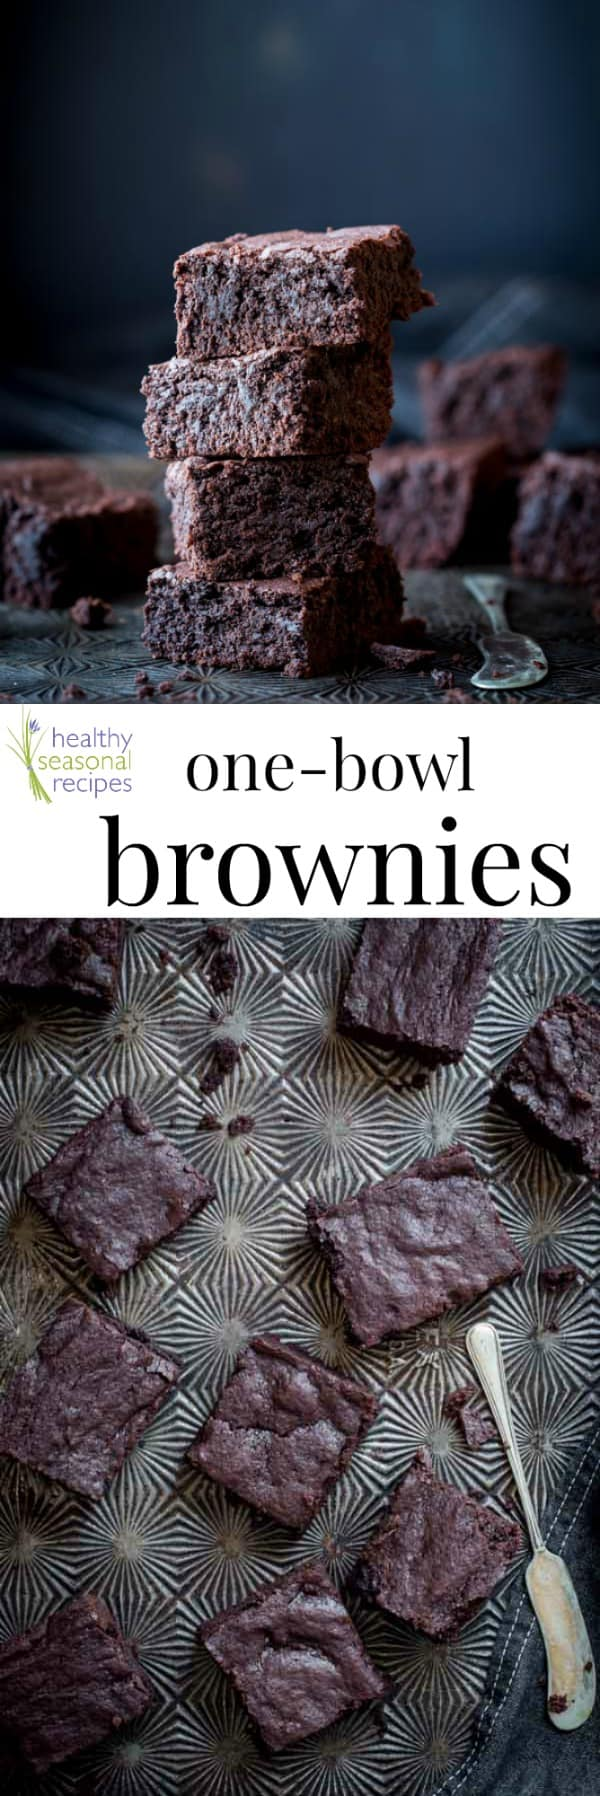 These one bowl brownies require 10 minutes of hands-on prep work and are perfectly dense, moist, and fudgy. The easiest brownie recipe ever? Definitely! #chocolate #dessert #onebowl #easy #fast #brownies #fudgy #brownierecipe